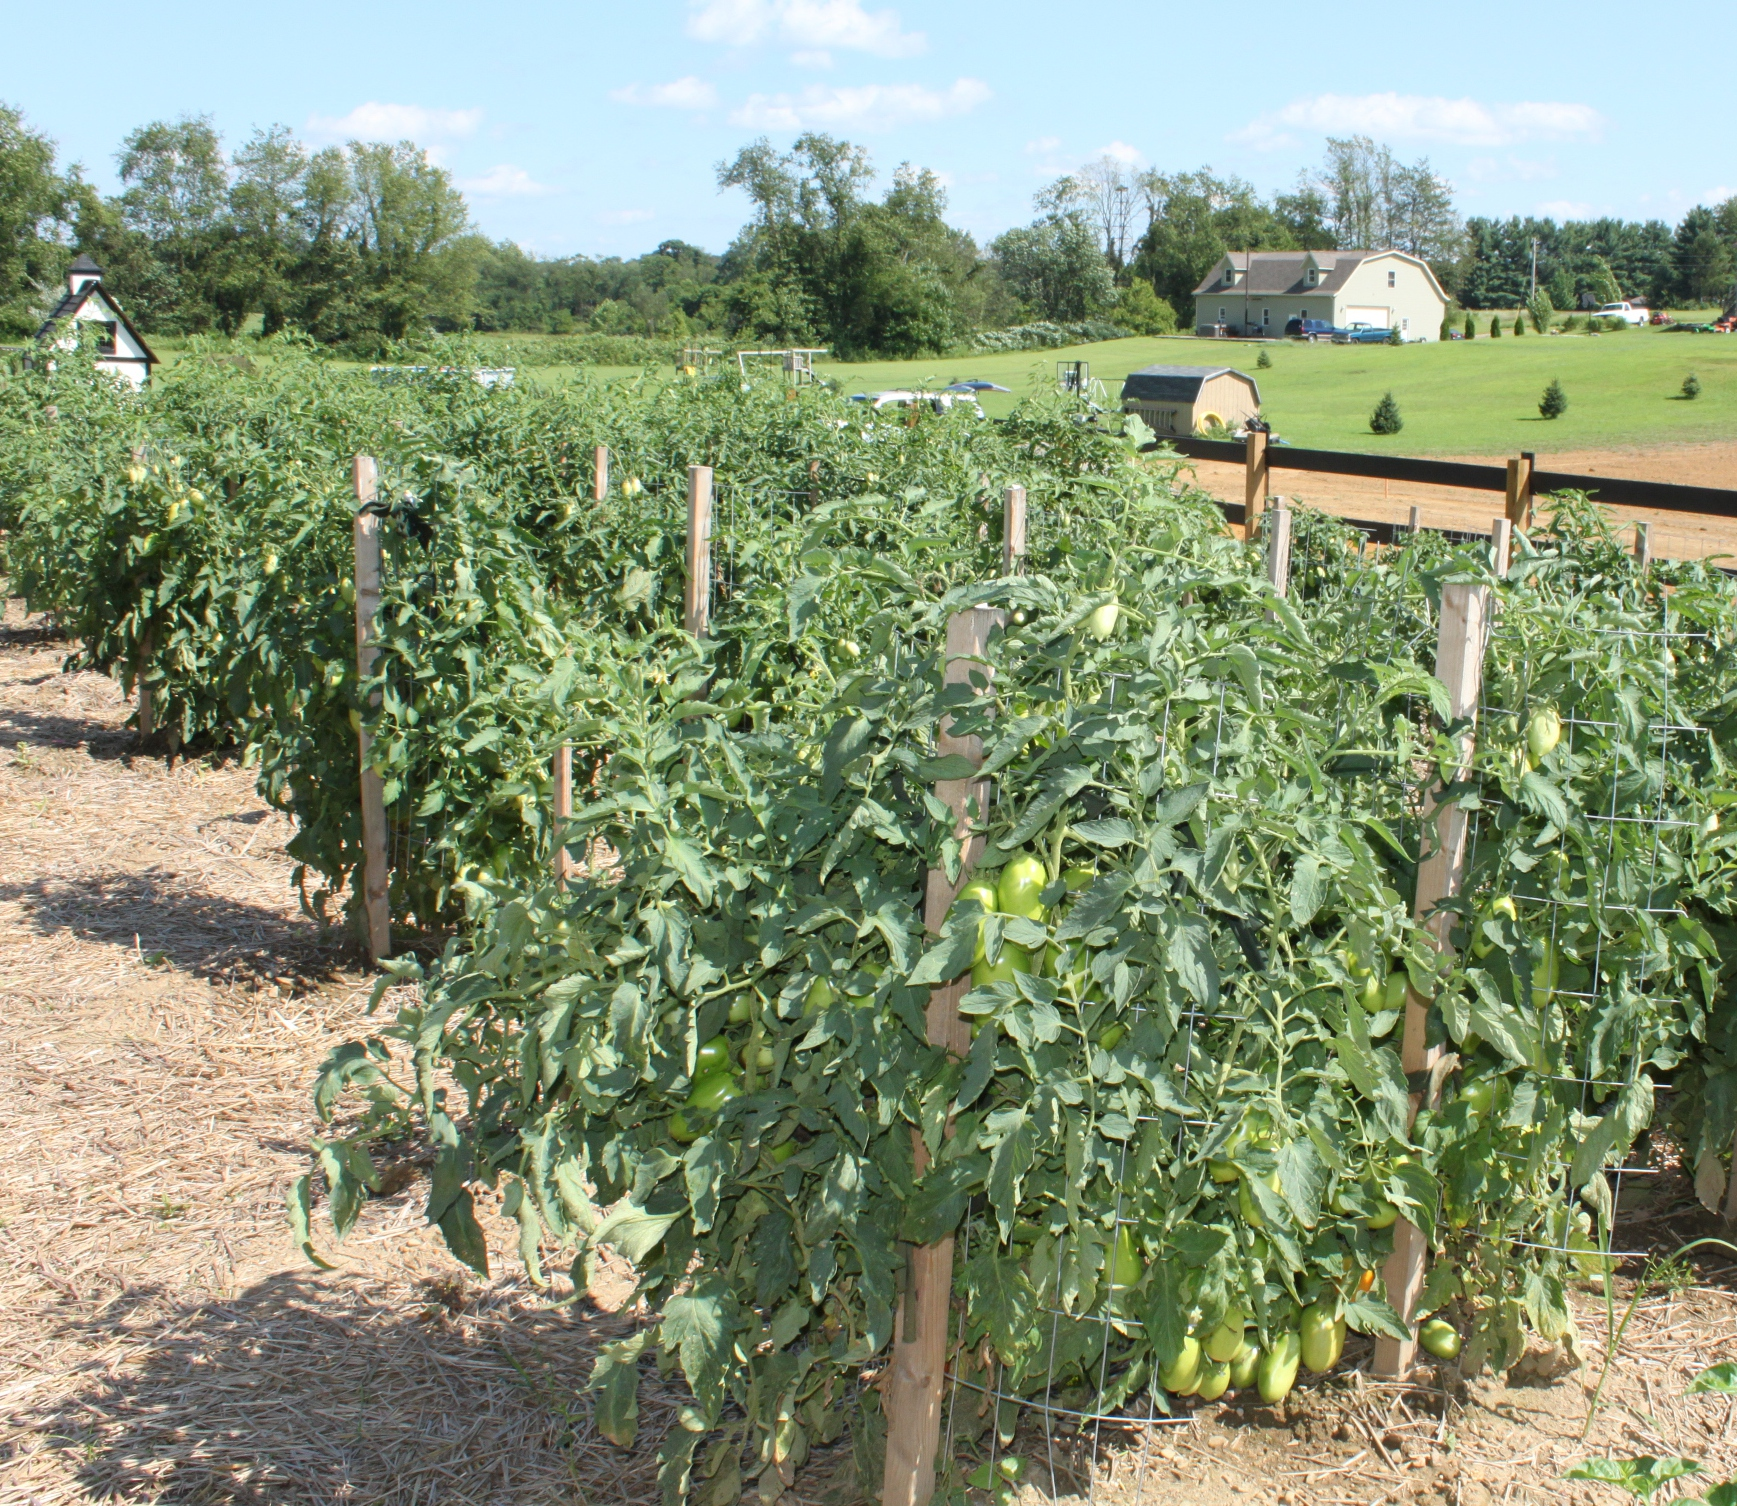 Soil For Tomatoes: The Keys To Growing Great Tomatoes